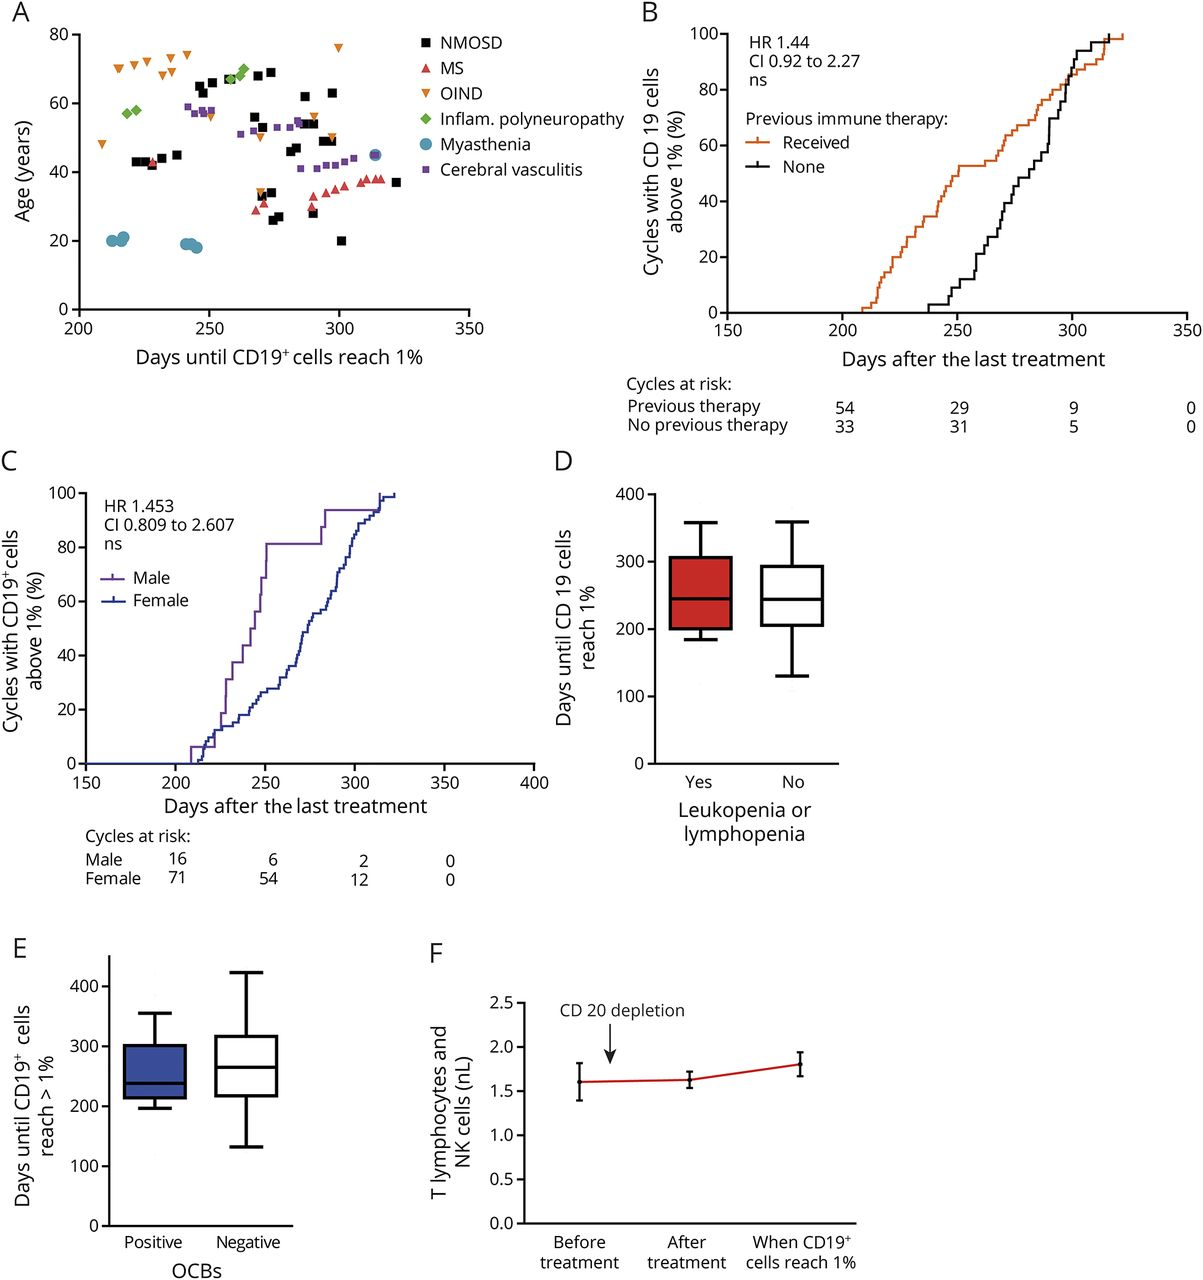 Monitoring B-cell repopulation after depletion therapy in